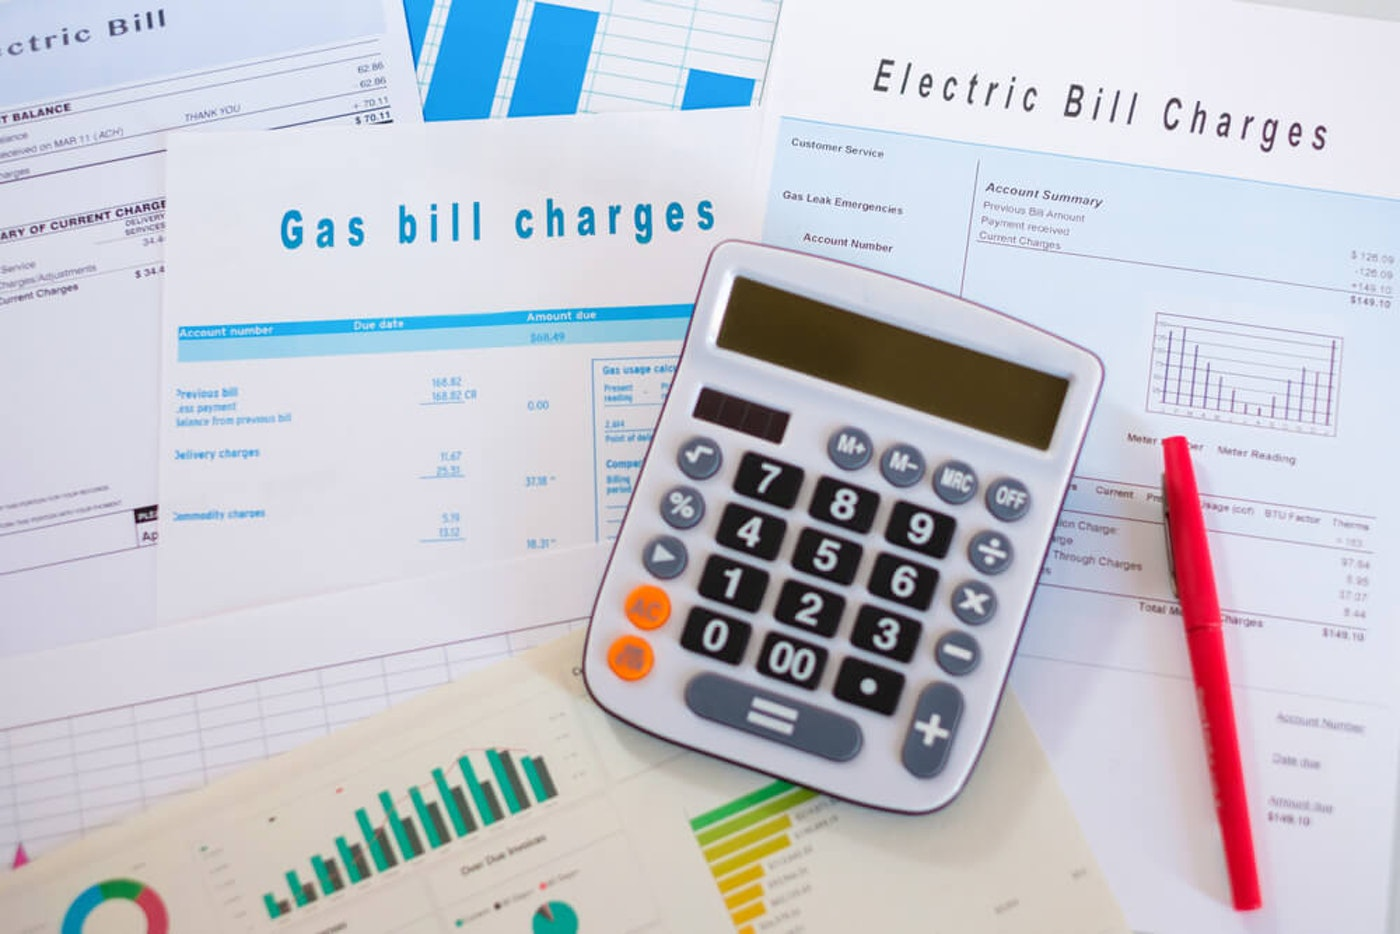 When Companies Overcharge, Who Gets the Money?